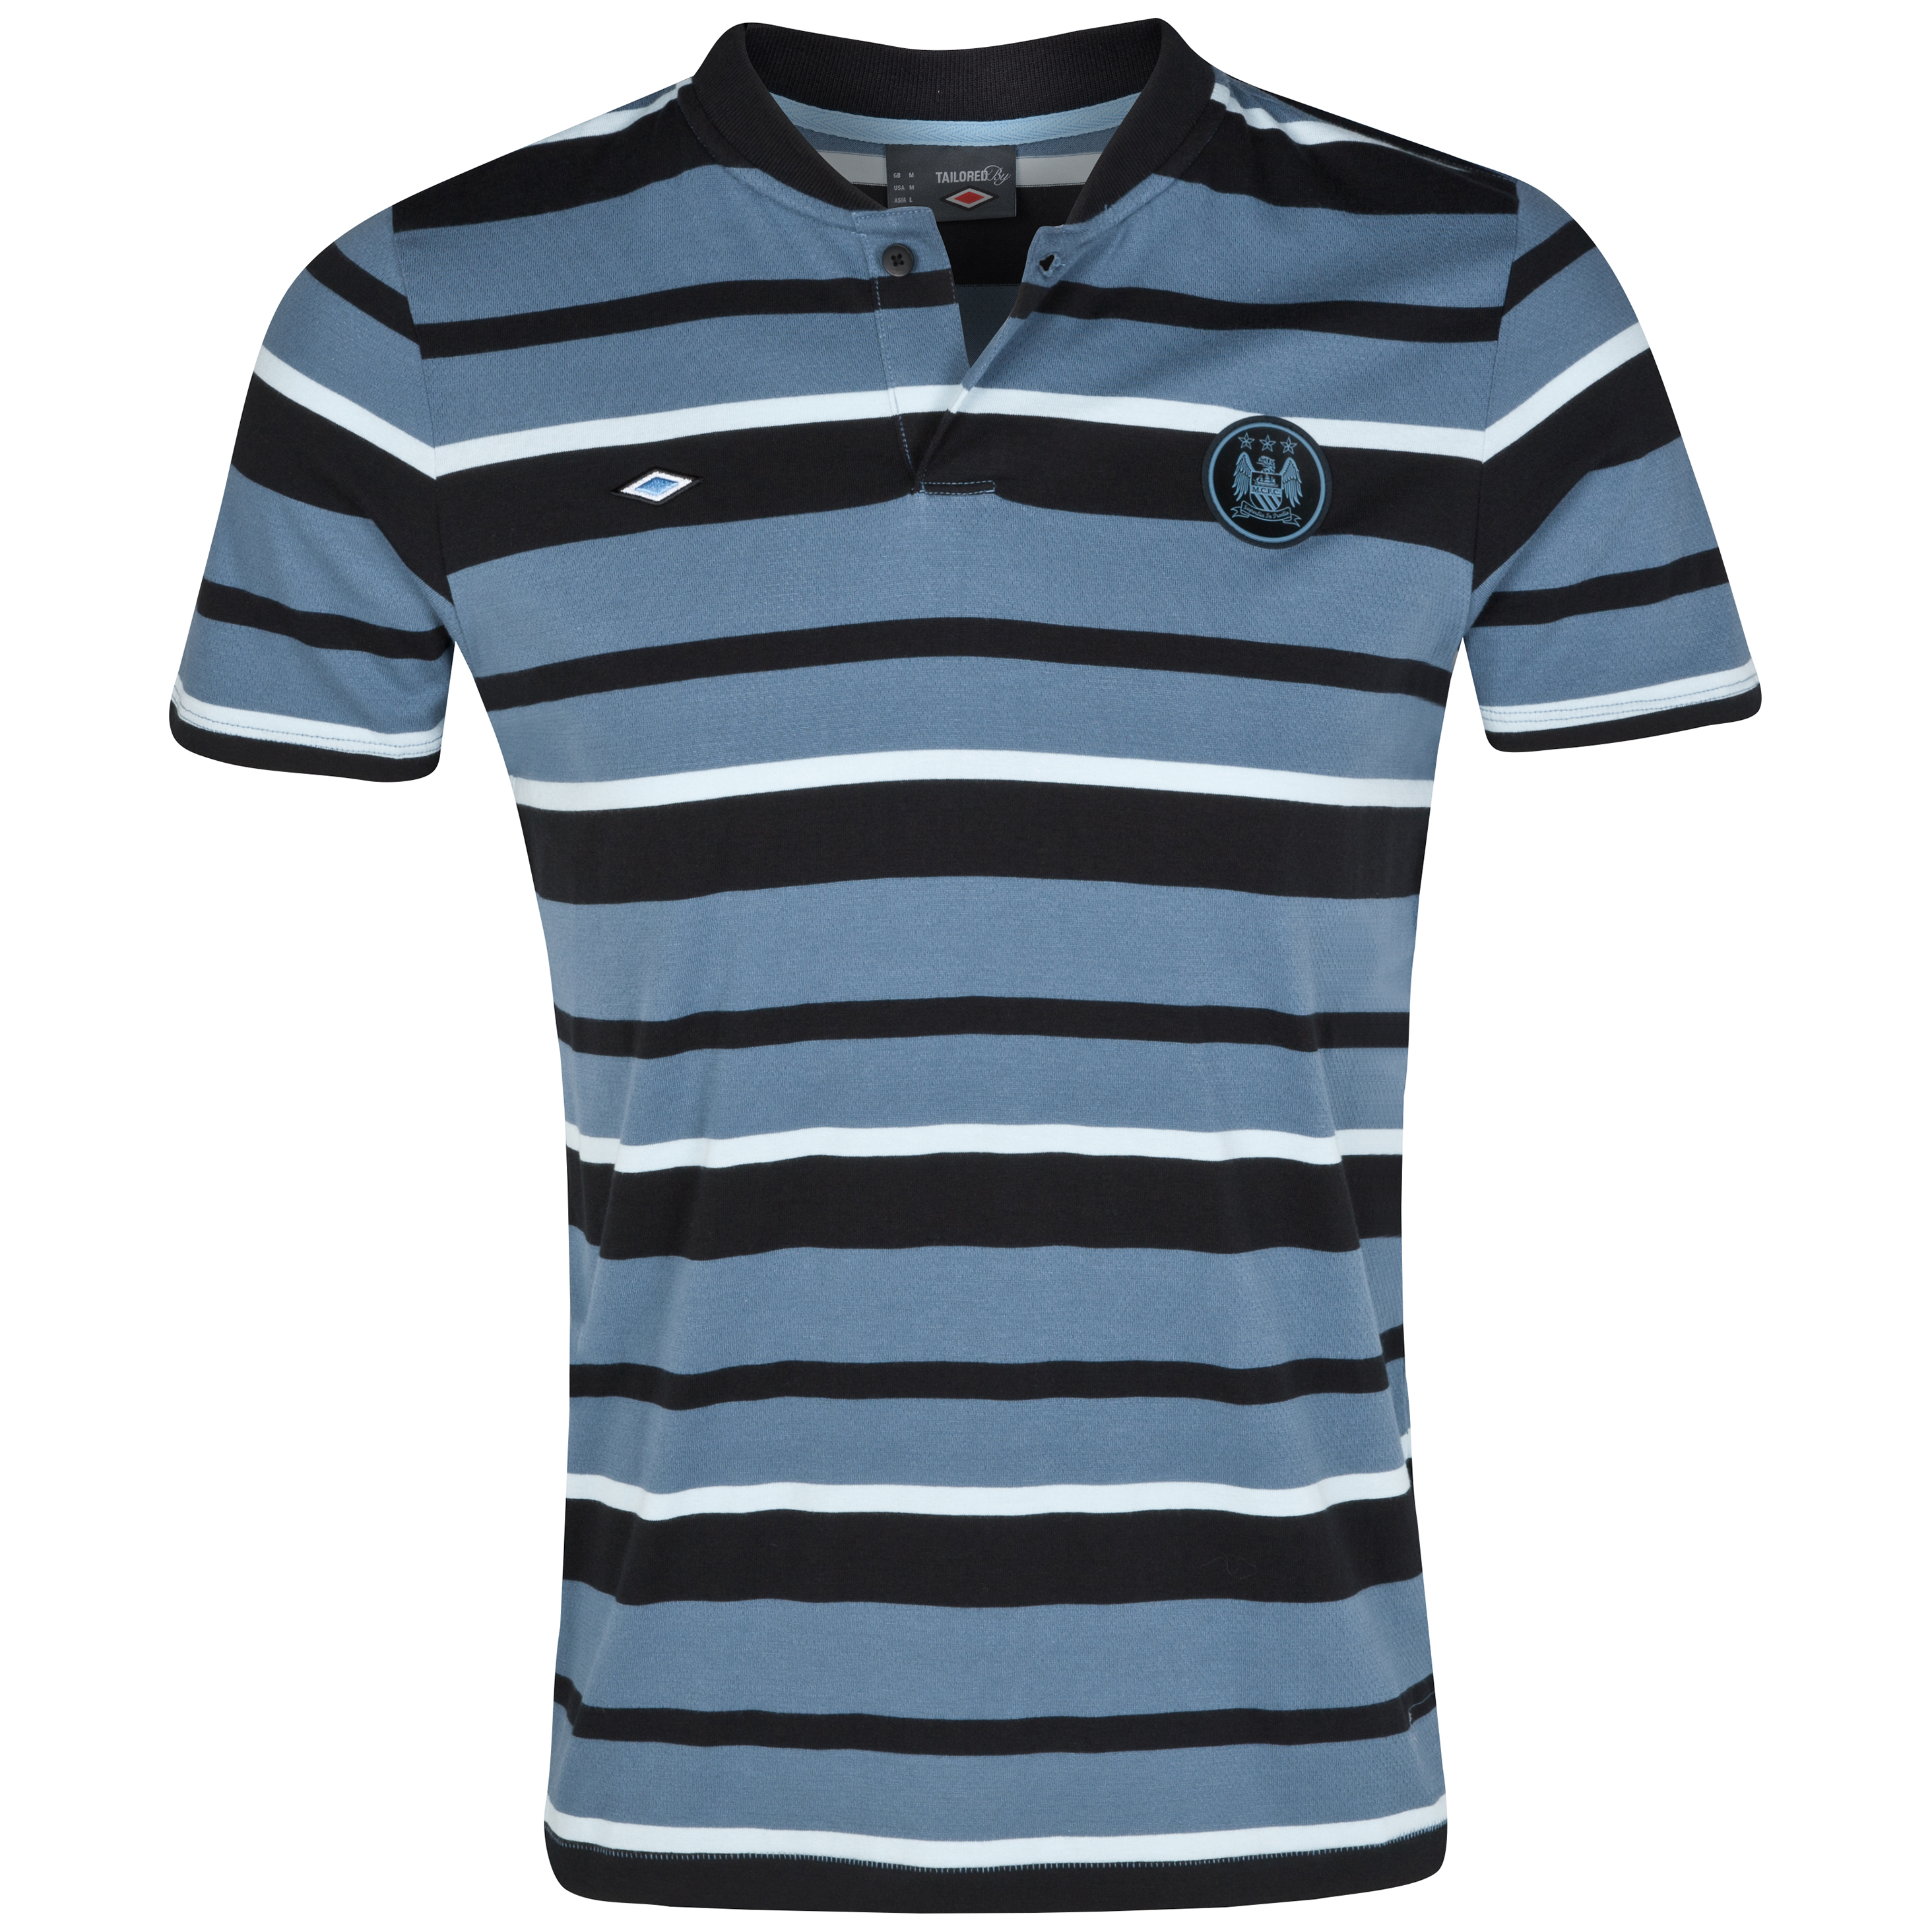 Manchester City Yarn Dye Stripe Polo - Black/China Blue/BabyBlue